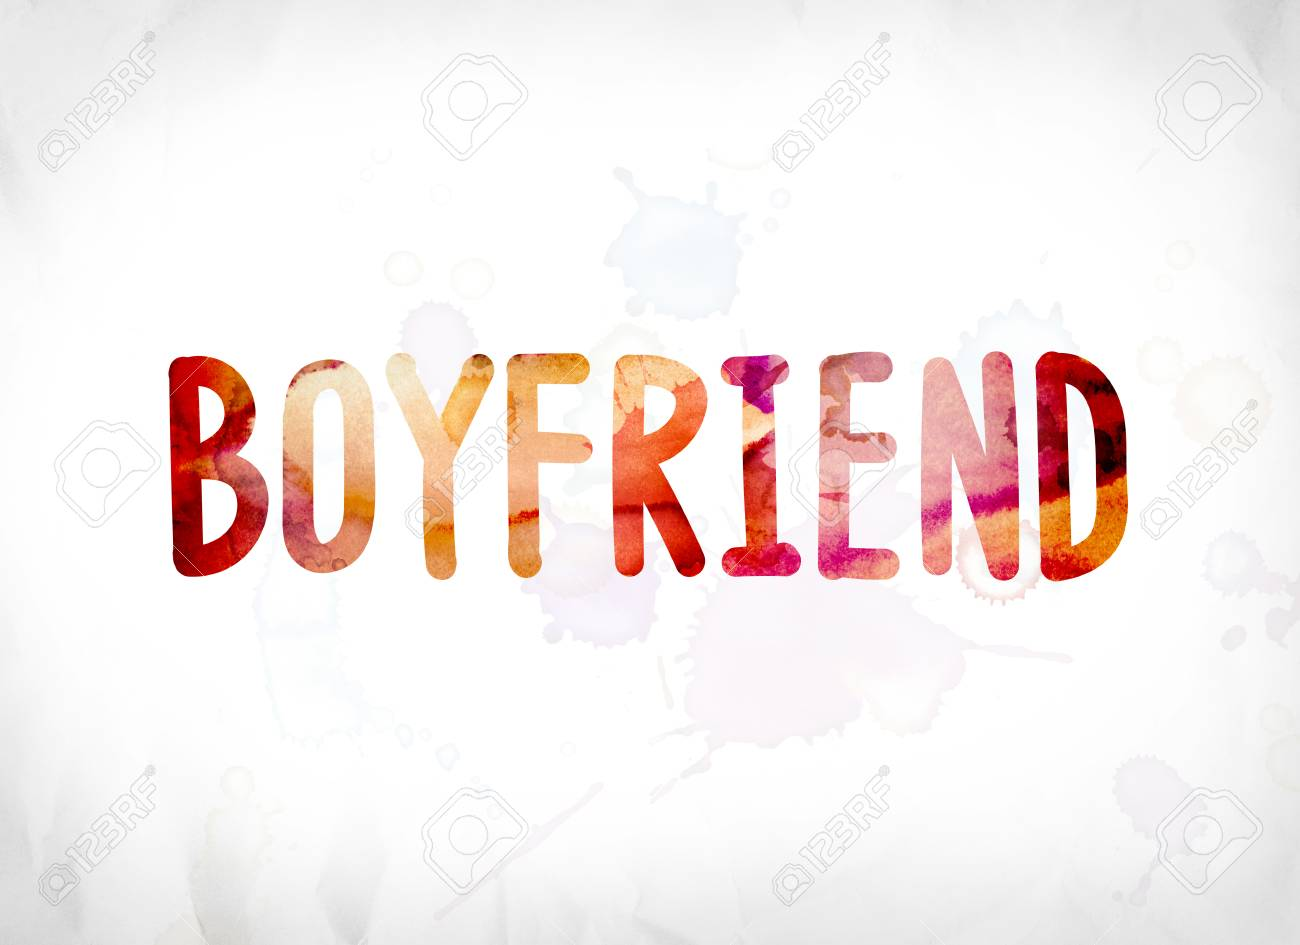 The Word Boyfriend Concept And Theme Painted In Colorful Watercolors